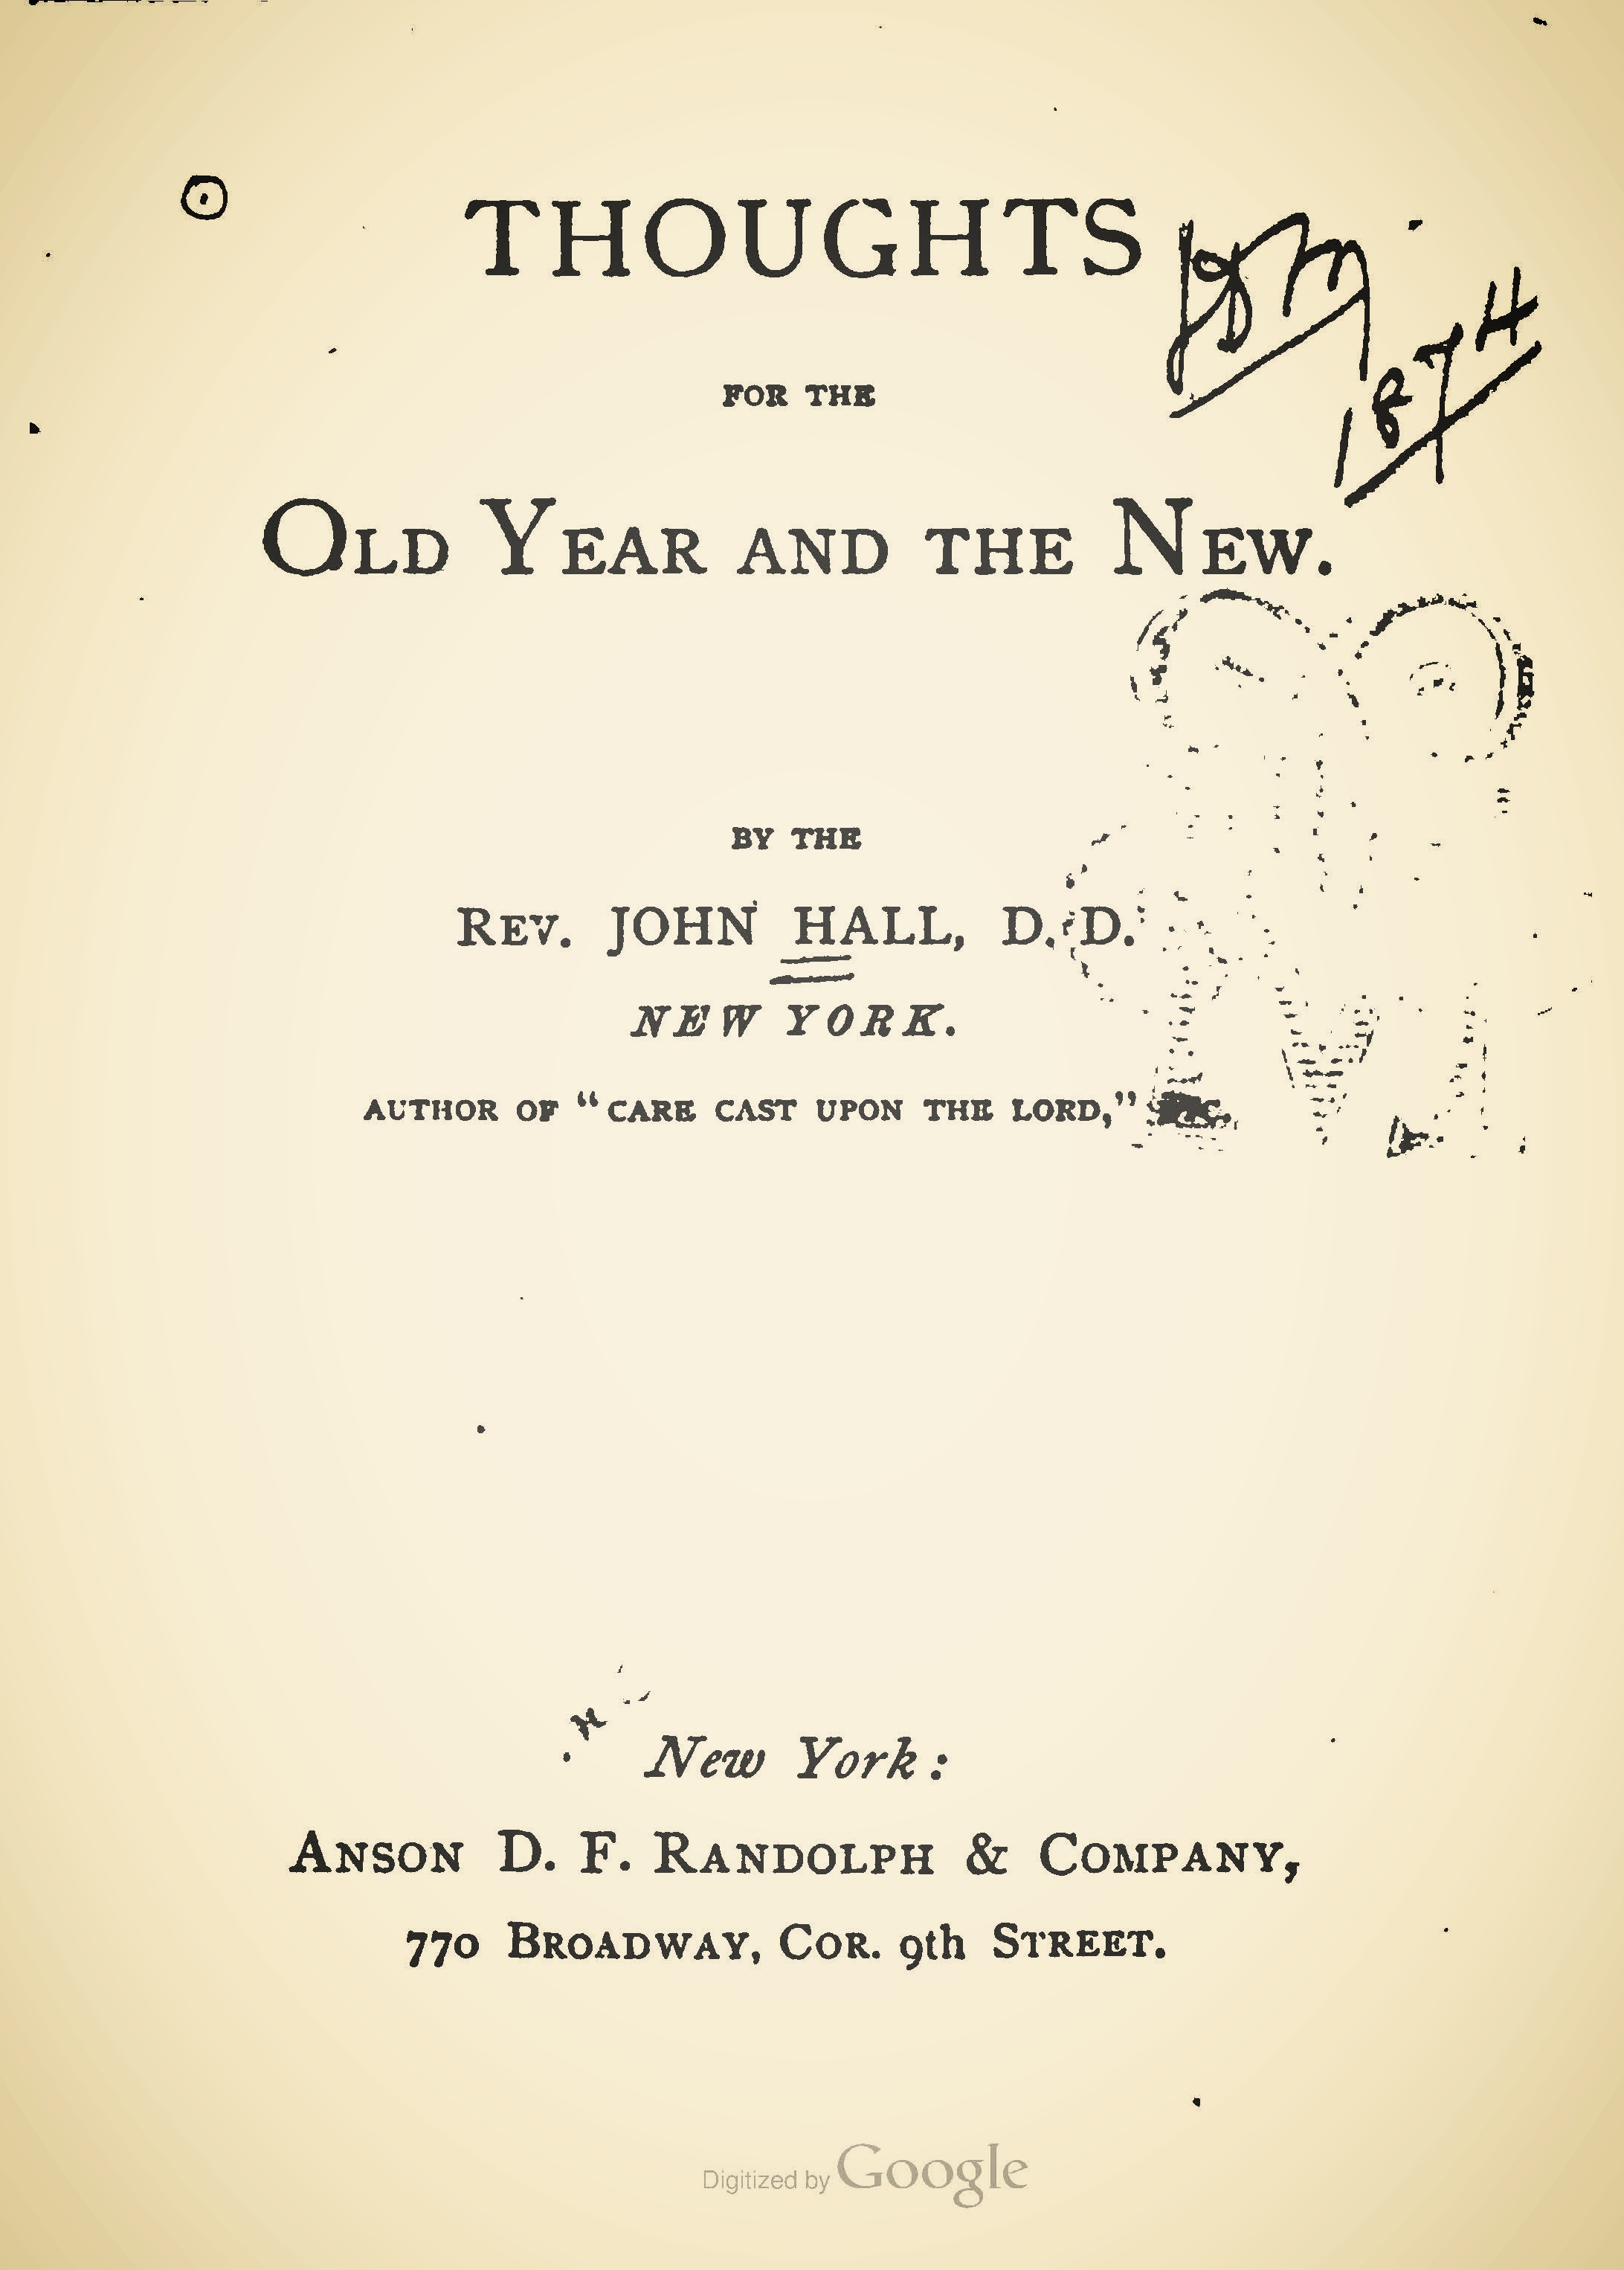 Hall, John, Thoughts for the Old Year and the New Title Page.jpg